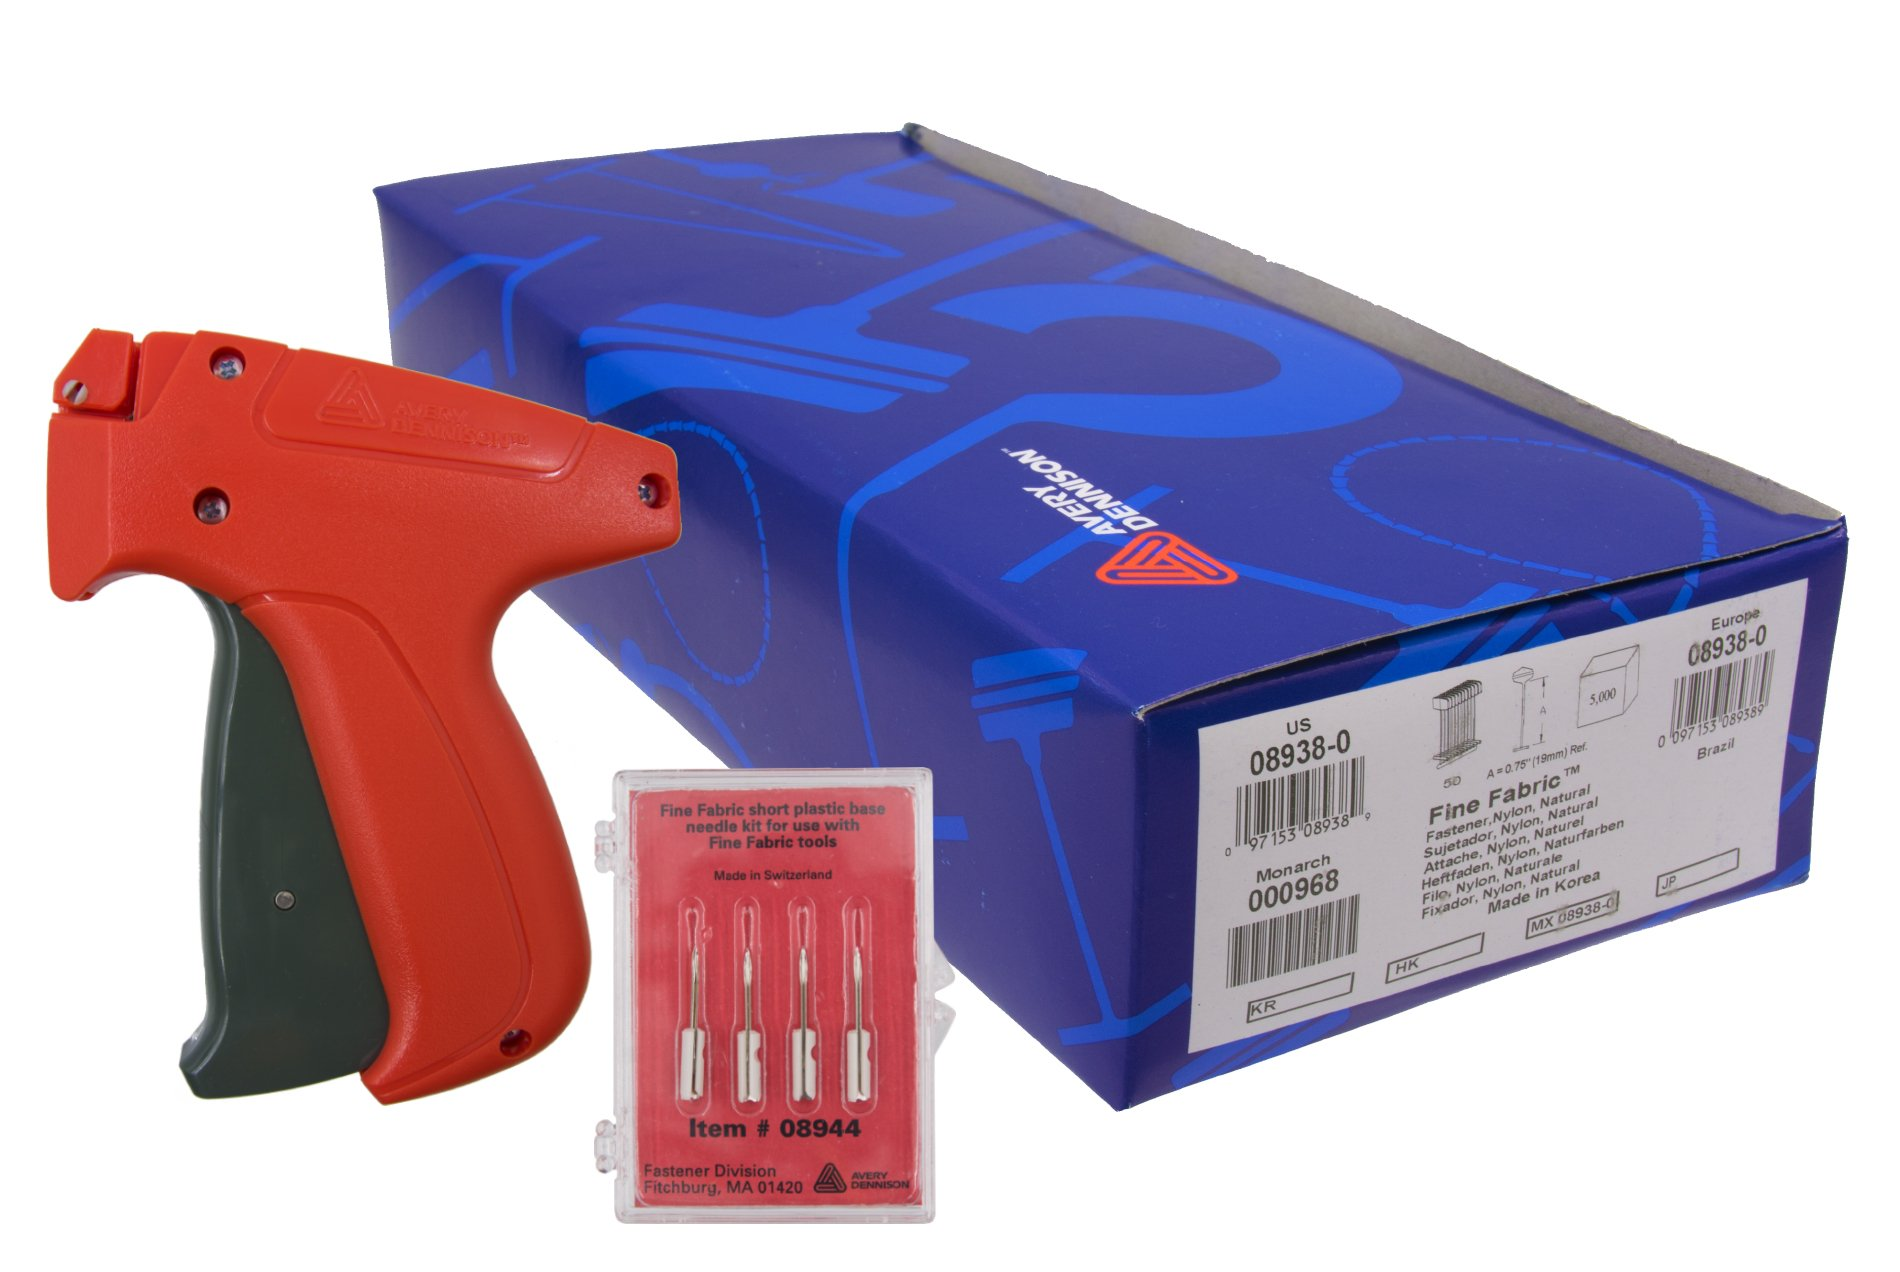 Avery Dennison Mark III 10312 Fine Tagging Gun with 5,000 Avery Dennison 3/4 Inch Barbs and 4 Avery Dennison Replacement Needles by Avery Dennison